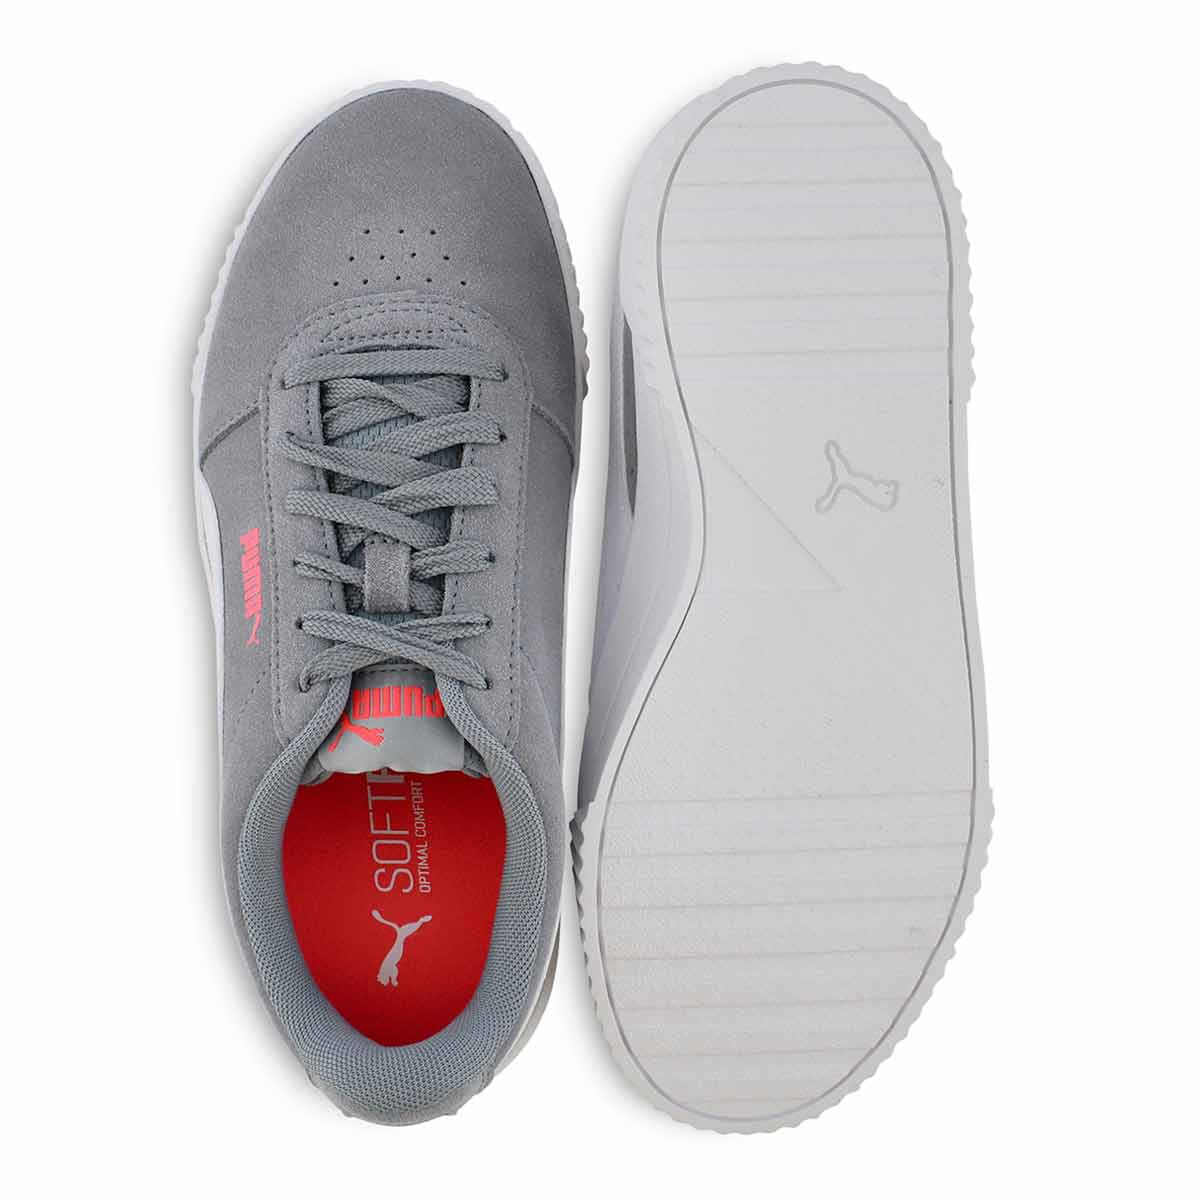 Lds Carina tradewinds lace up sneaker